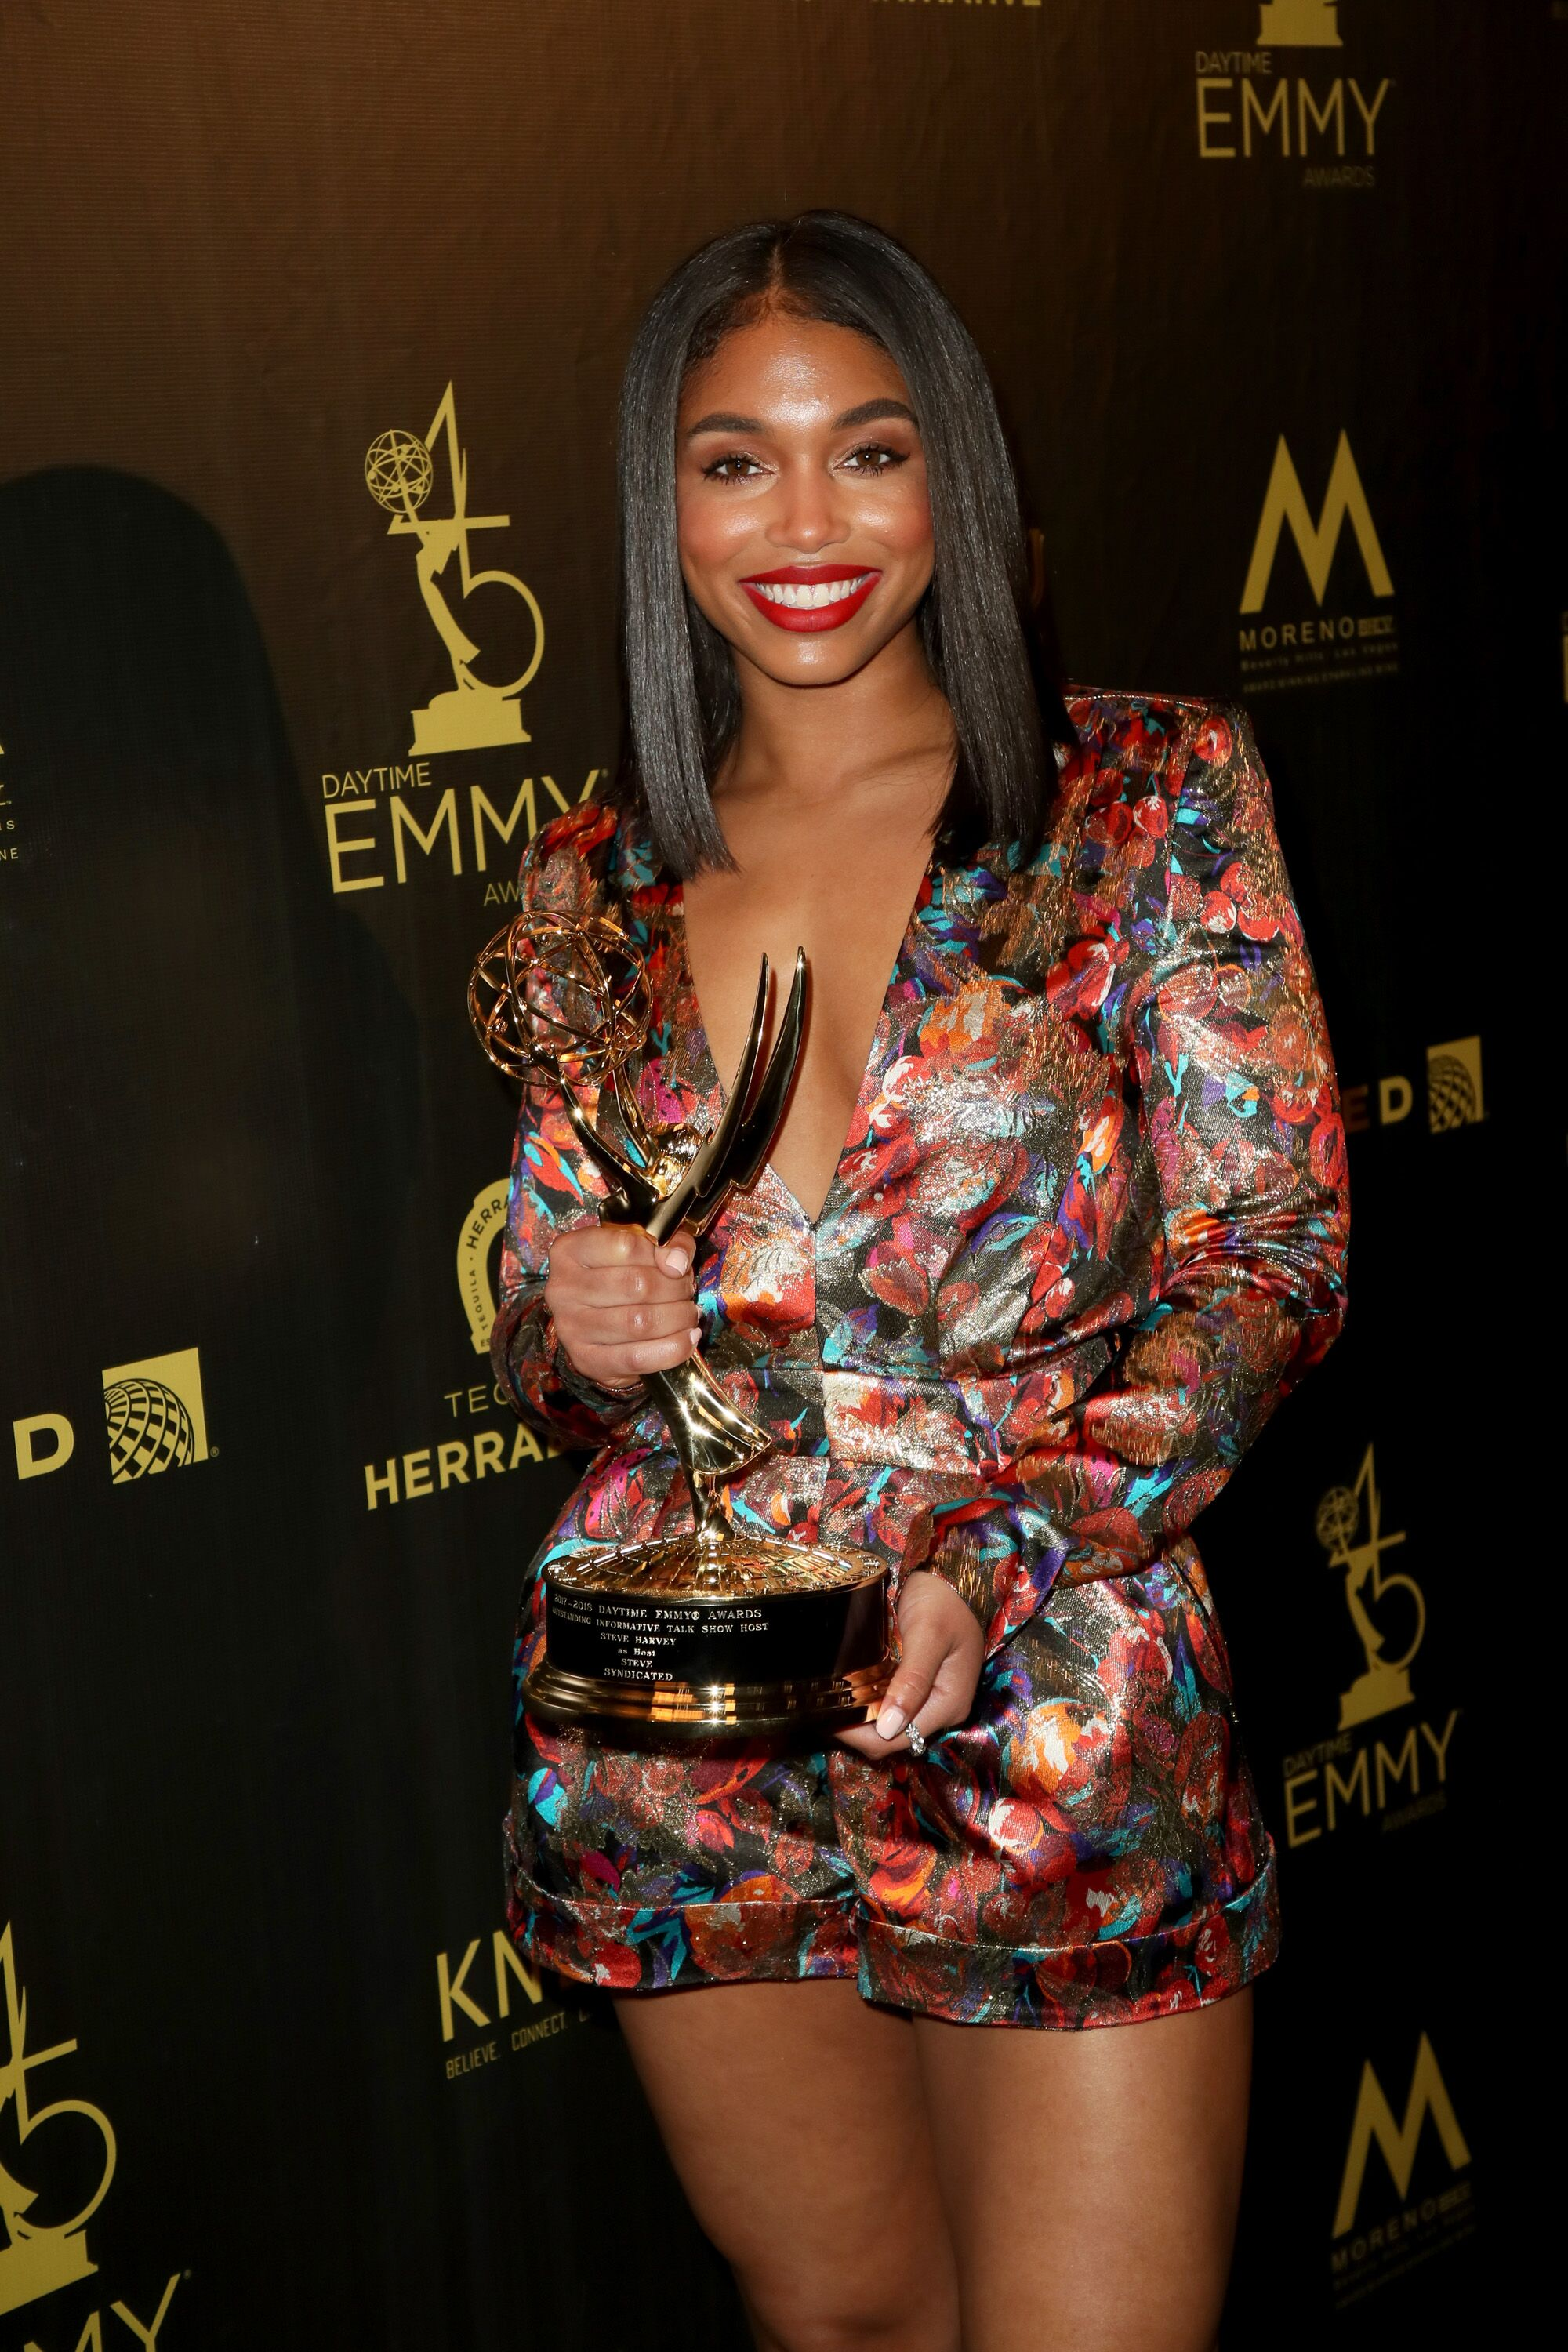 Steve Harvey's stepdaughter Lori at the Emmys/ Source: Getty Images